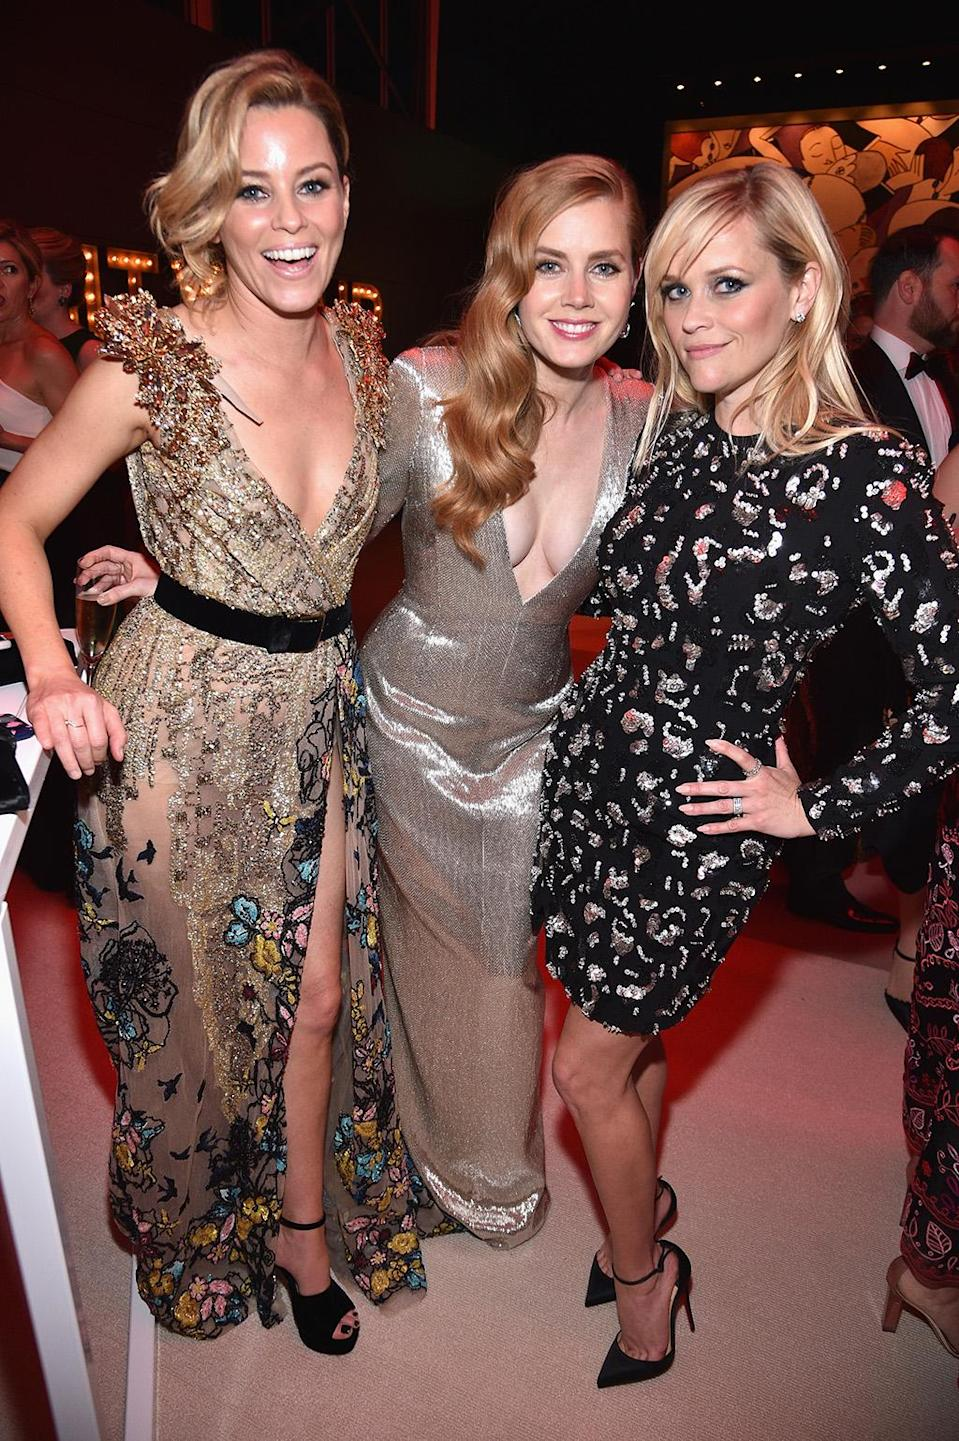 <p>(L-R) Elizabeth Banks, Amy Adams and Reese Witherspoon attend the 2017 Vanity Fair Oscar Party hosted by Graydon Carter at Wallis Annenberg Center for the Performing Arts on February 26, 2017 in Beverly Hills, California. (Photo by Kevin Mazur/VF17/WireImage) </p>